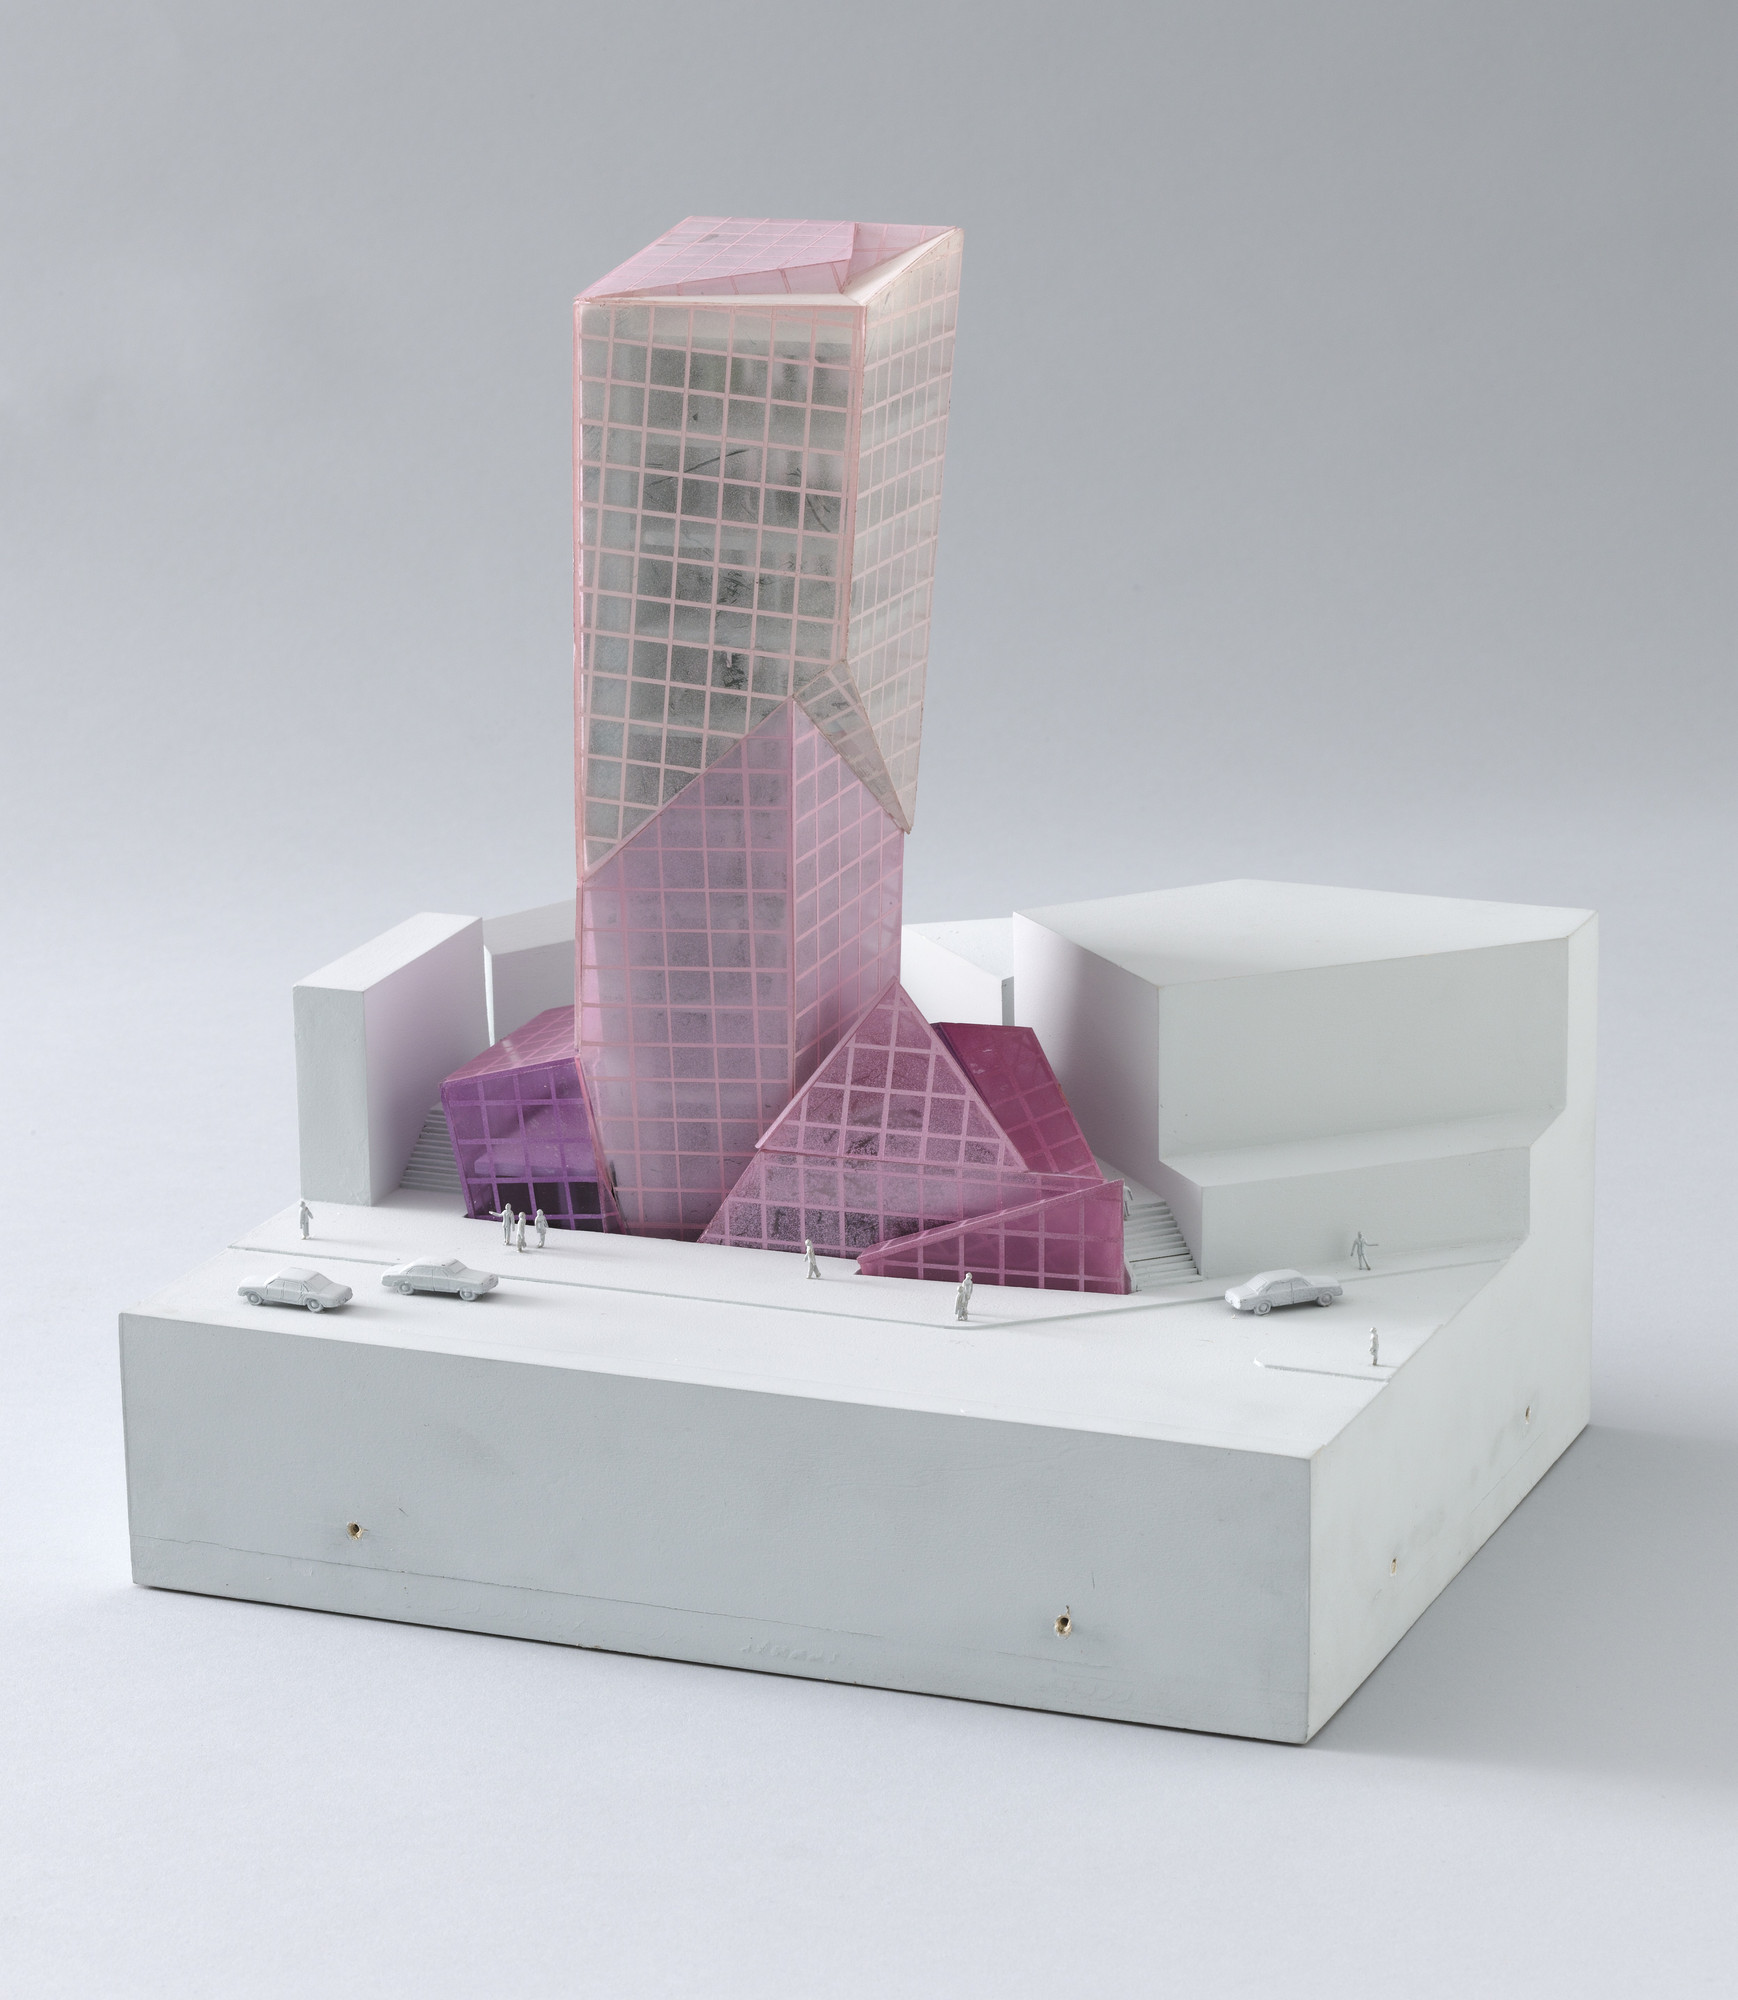 Eisenman Architects, New York, Peter Eisenman, Richard Rosson, Mark Wamble, Gregory Merryweather, Nazli Gononsay. Alteka Office Building Project, Tokyo, Japan. 1991